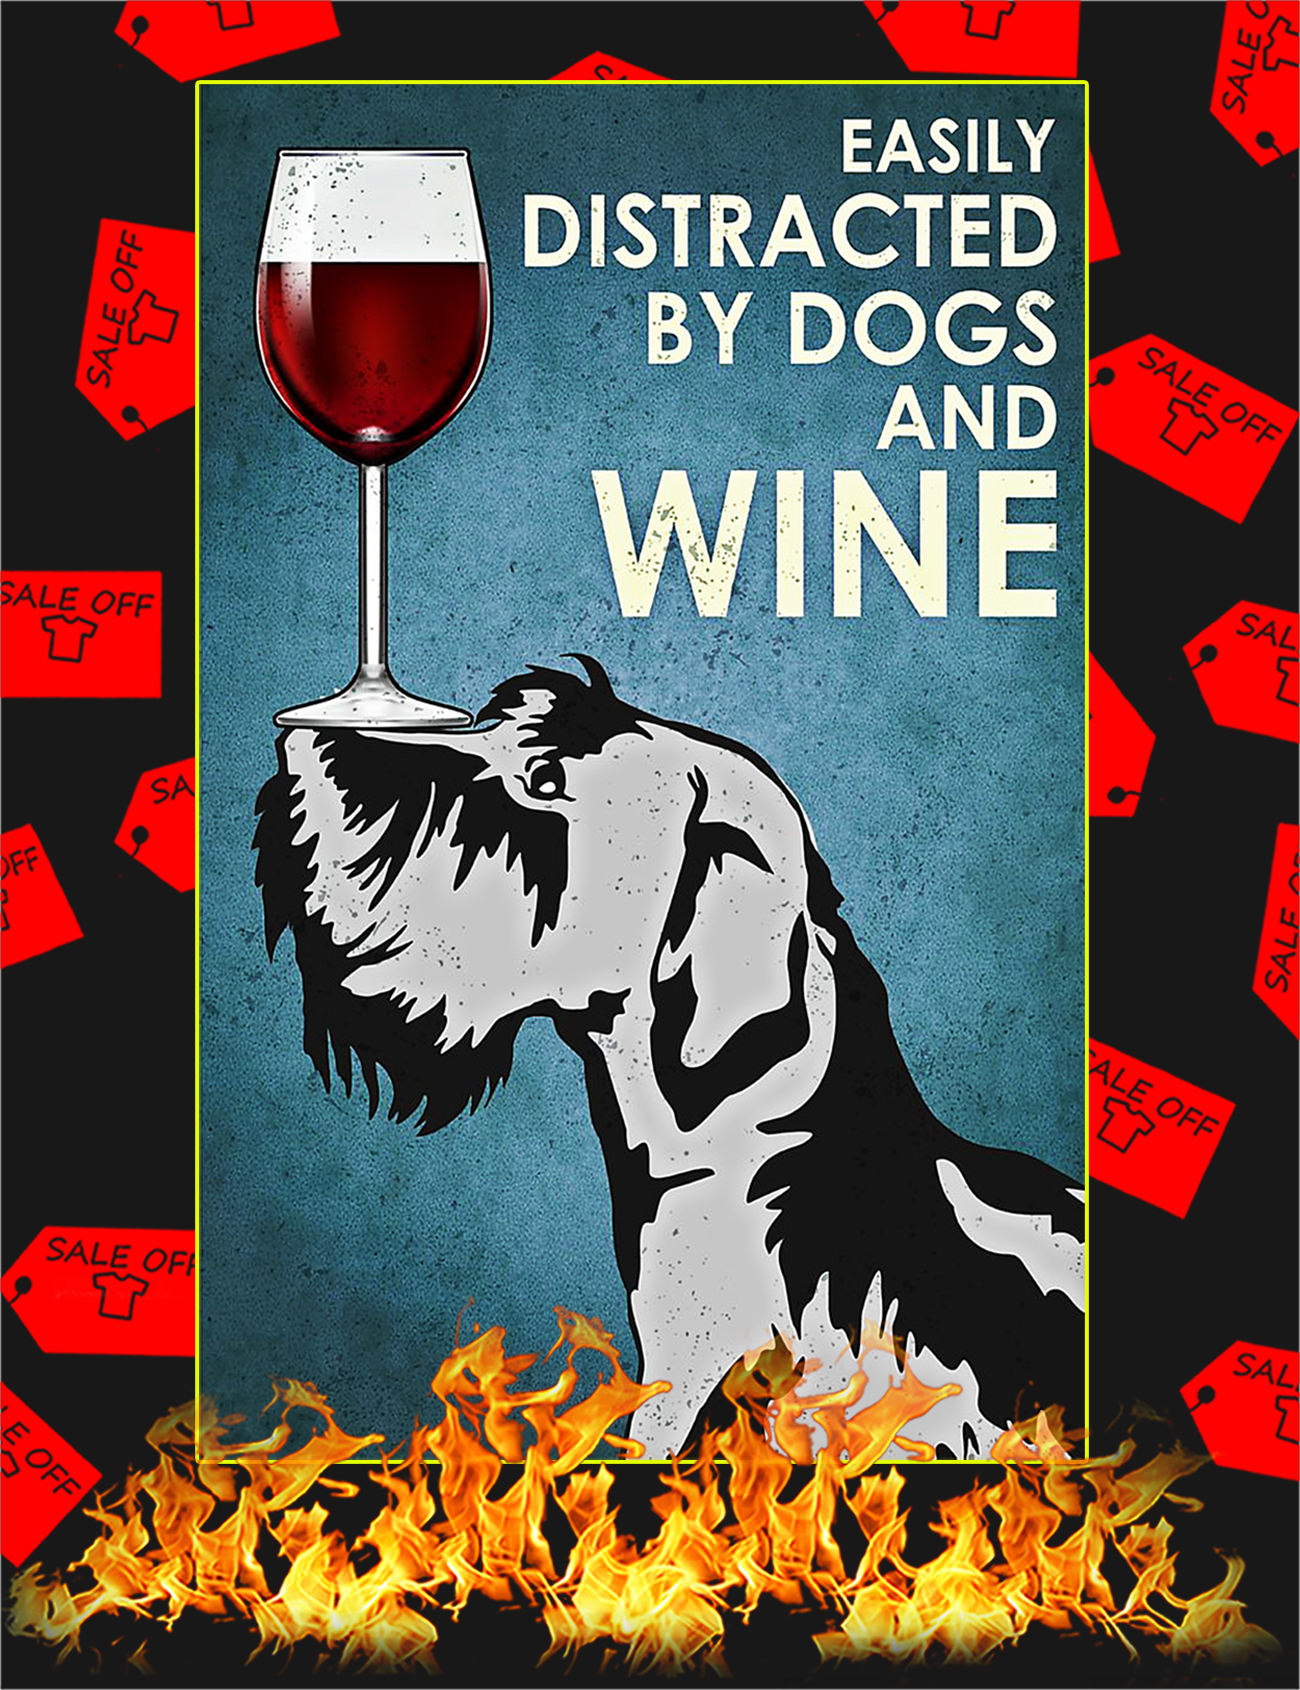 Easily distracted by Scottish terrier dogs and wine poster - A1